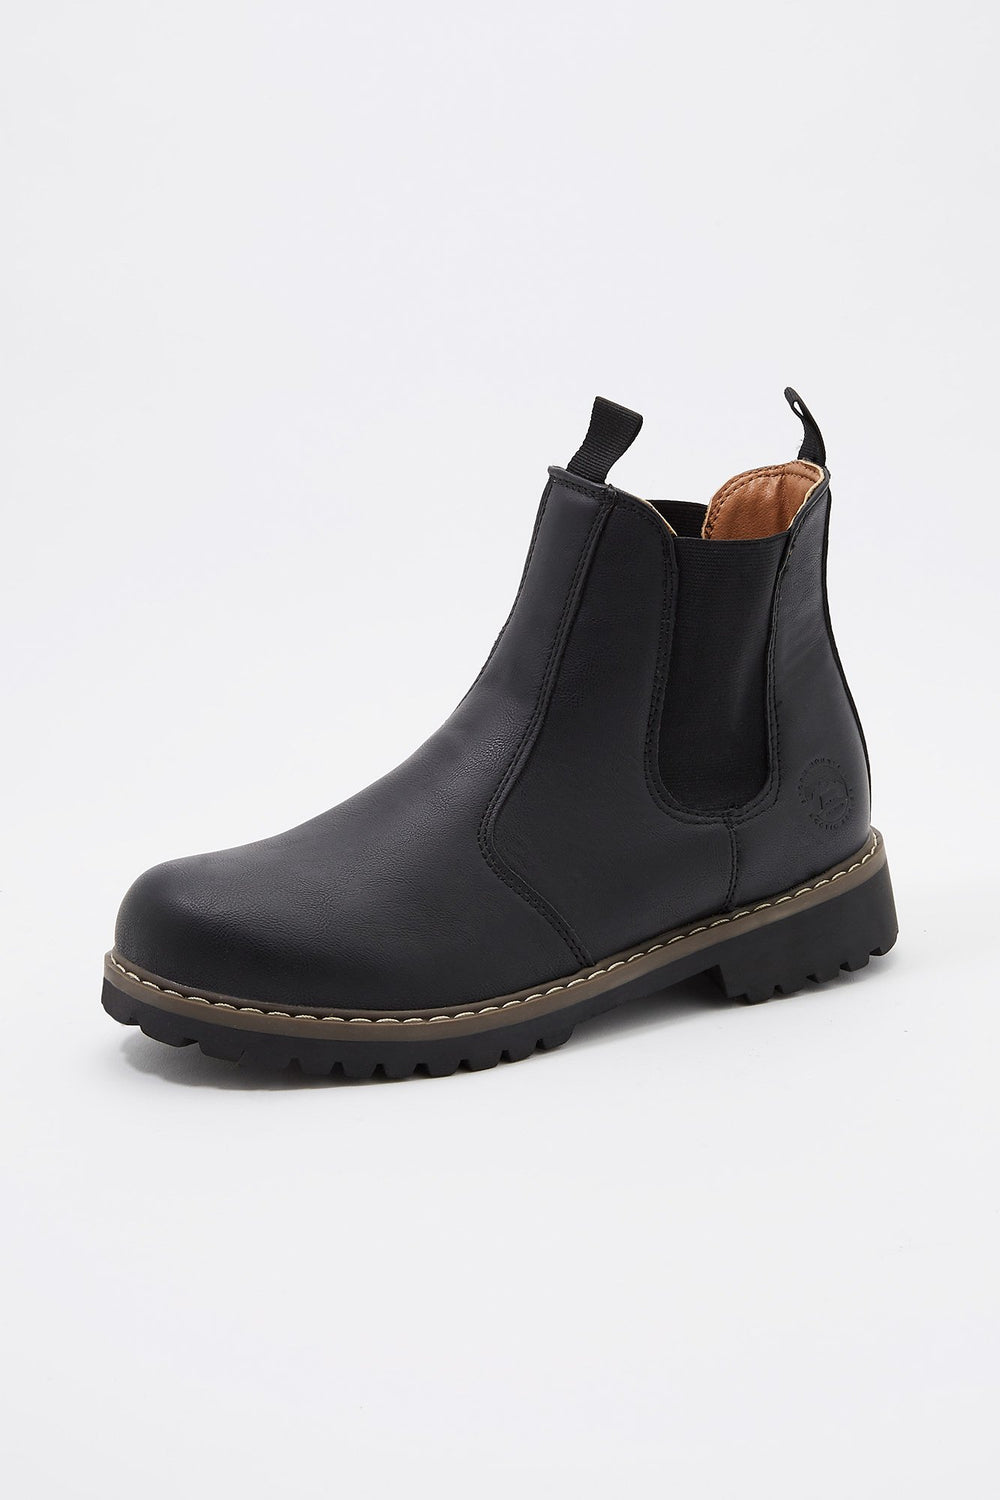 Storm Mountain Mens Sherpa-Lined Pull-On Chelsea Boots Black